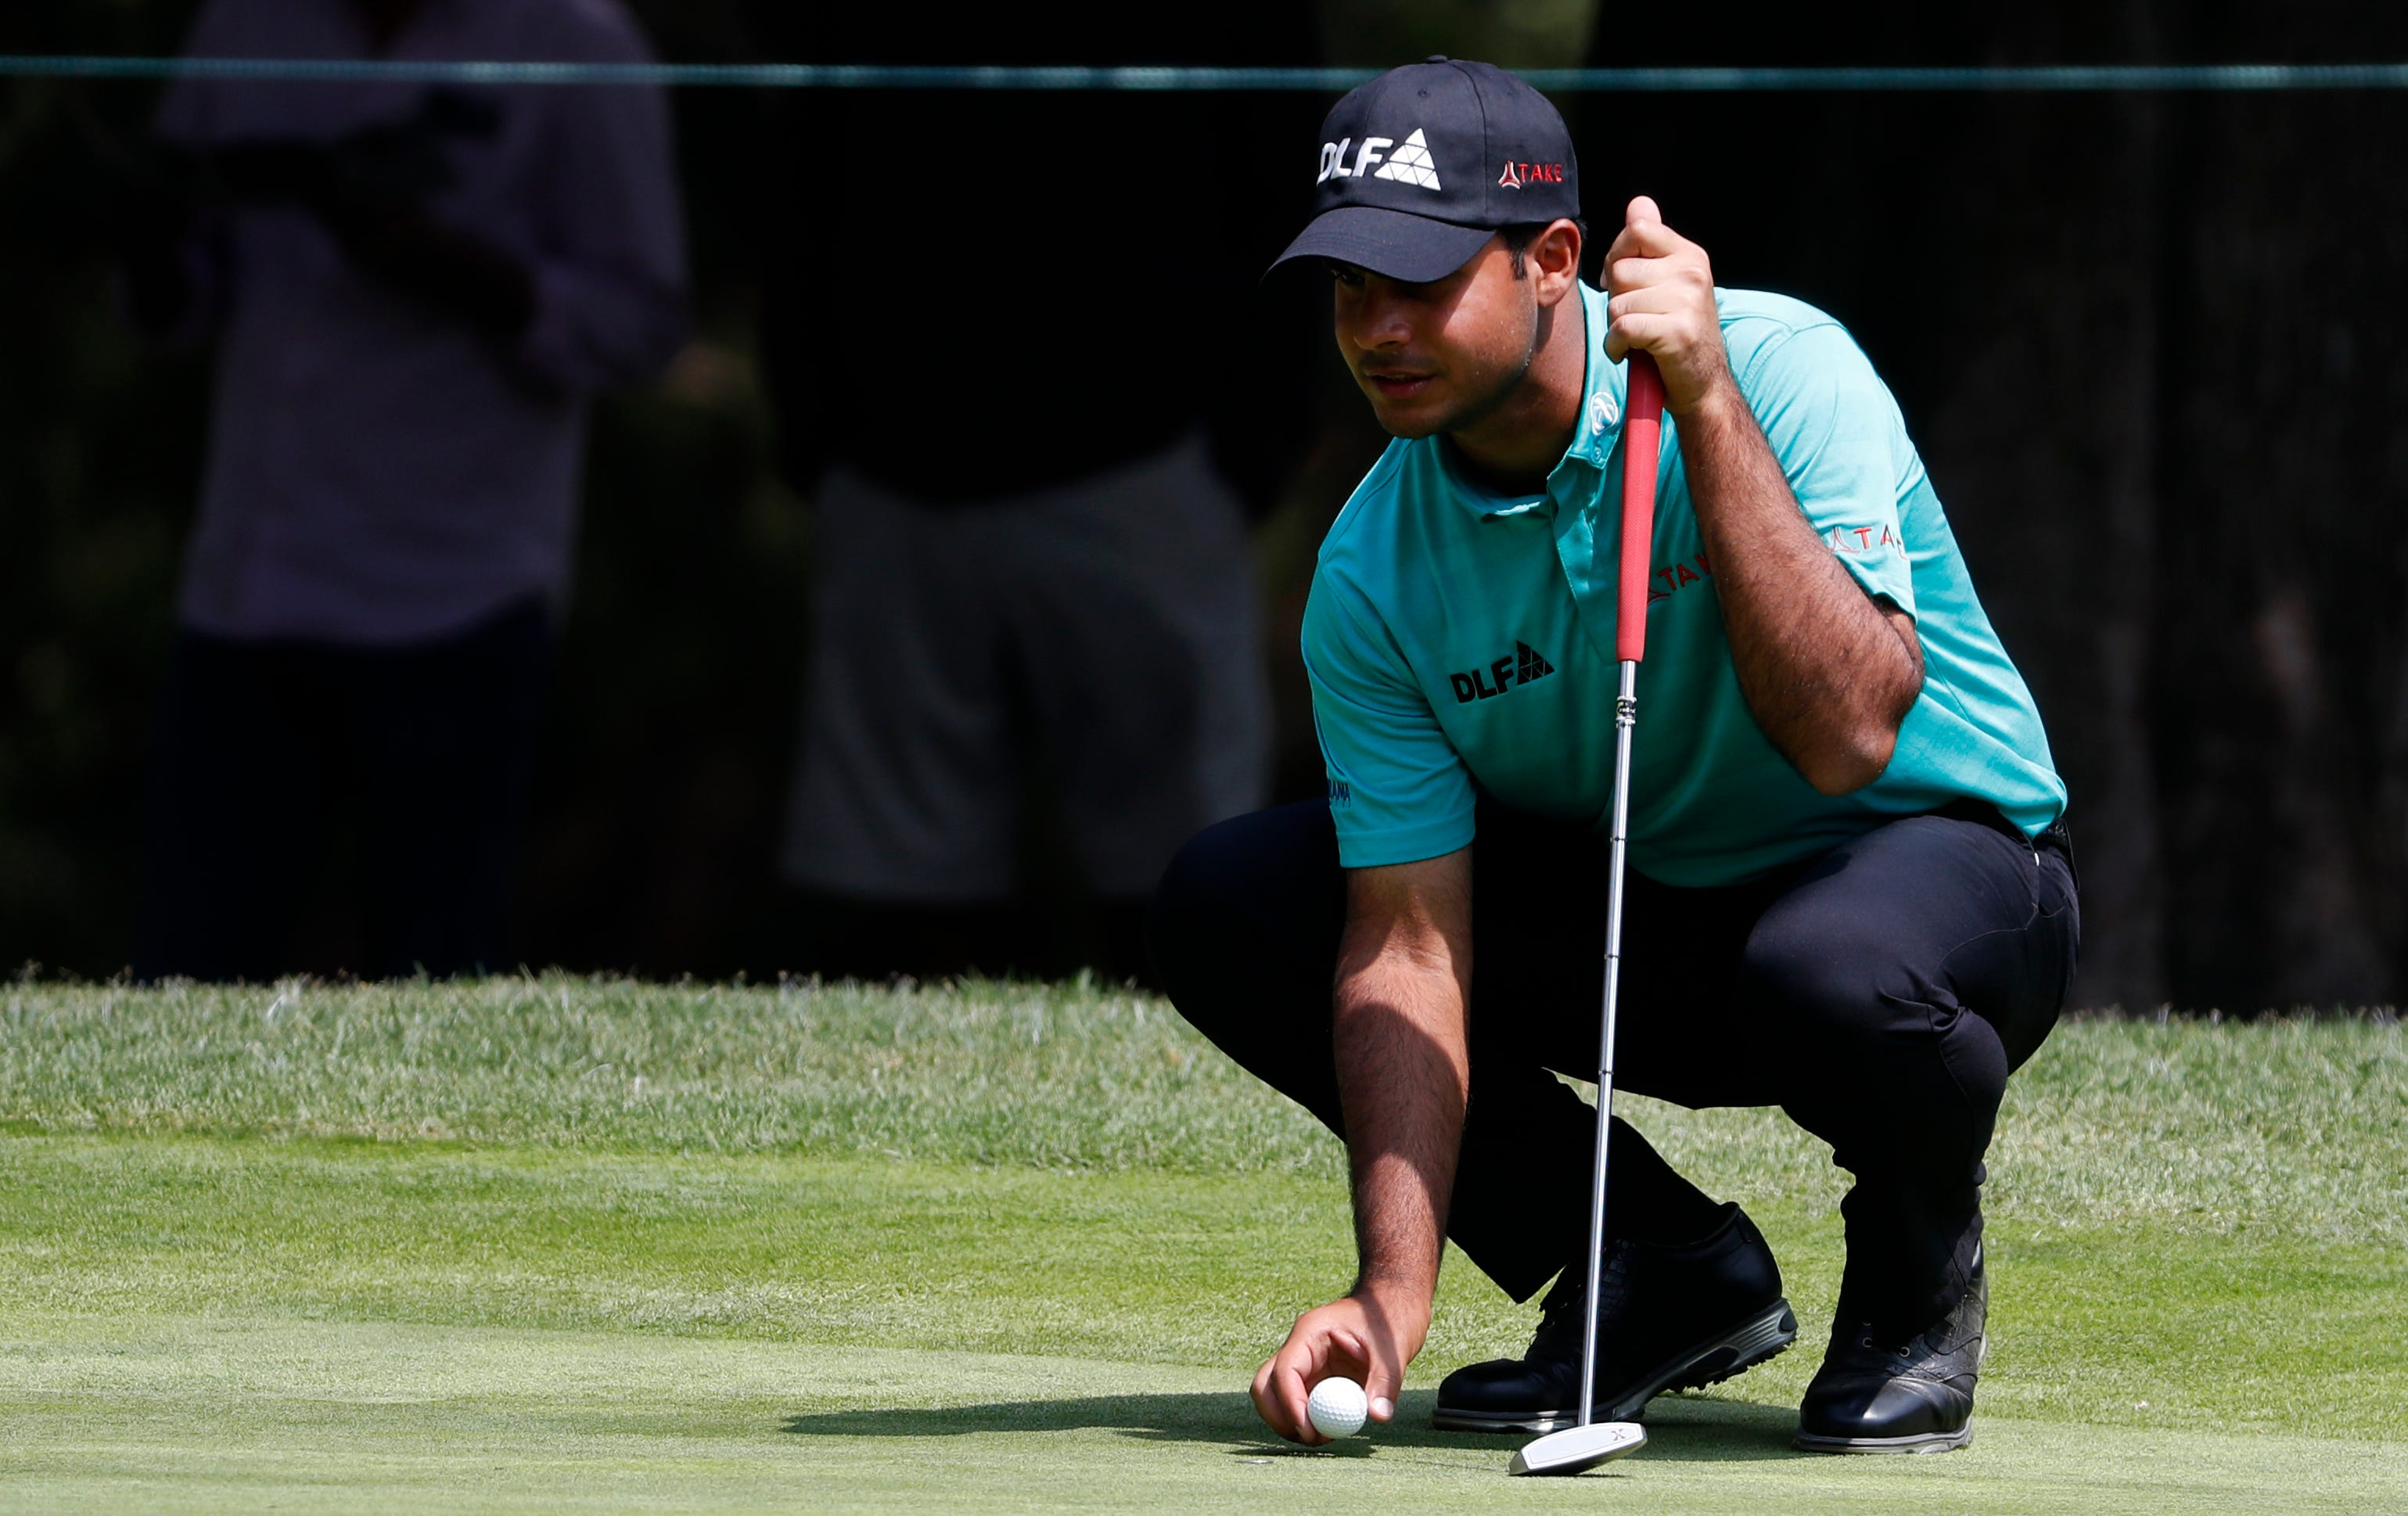 Sharma soars into the lead in Mexico